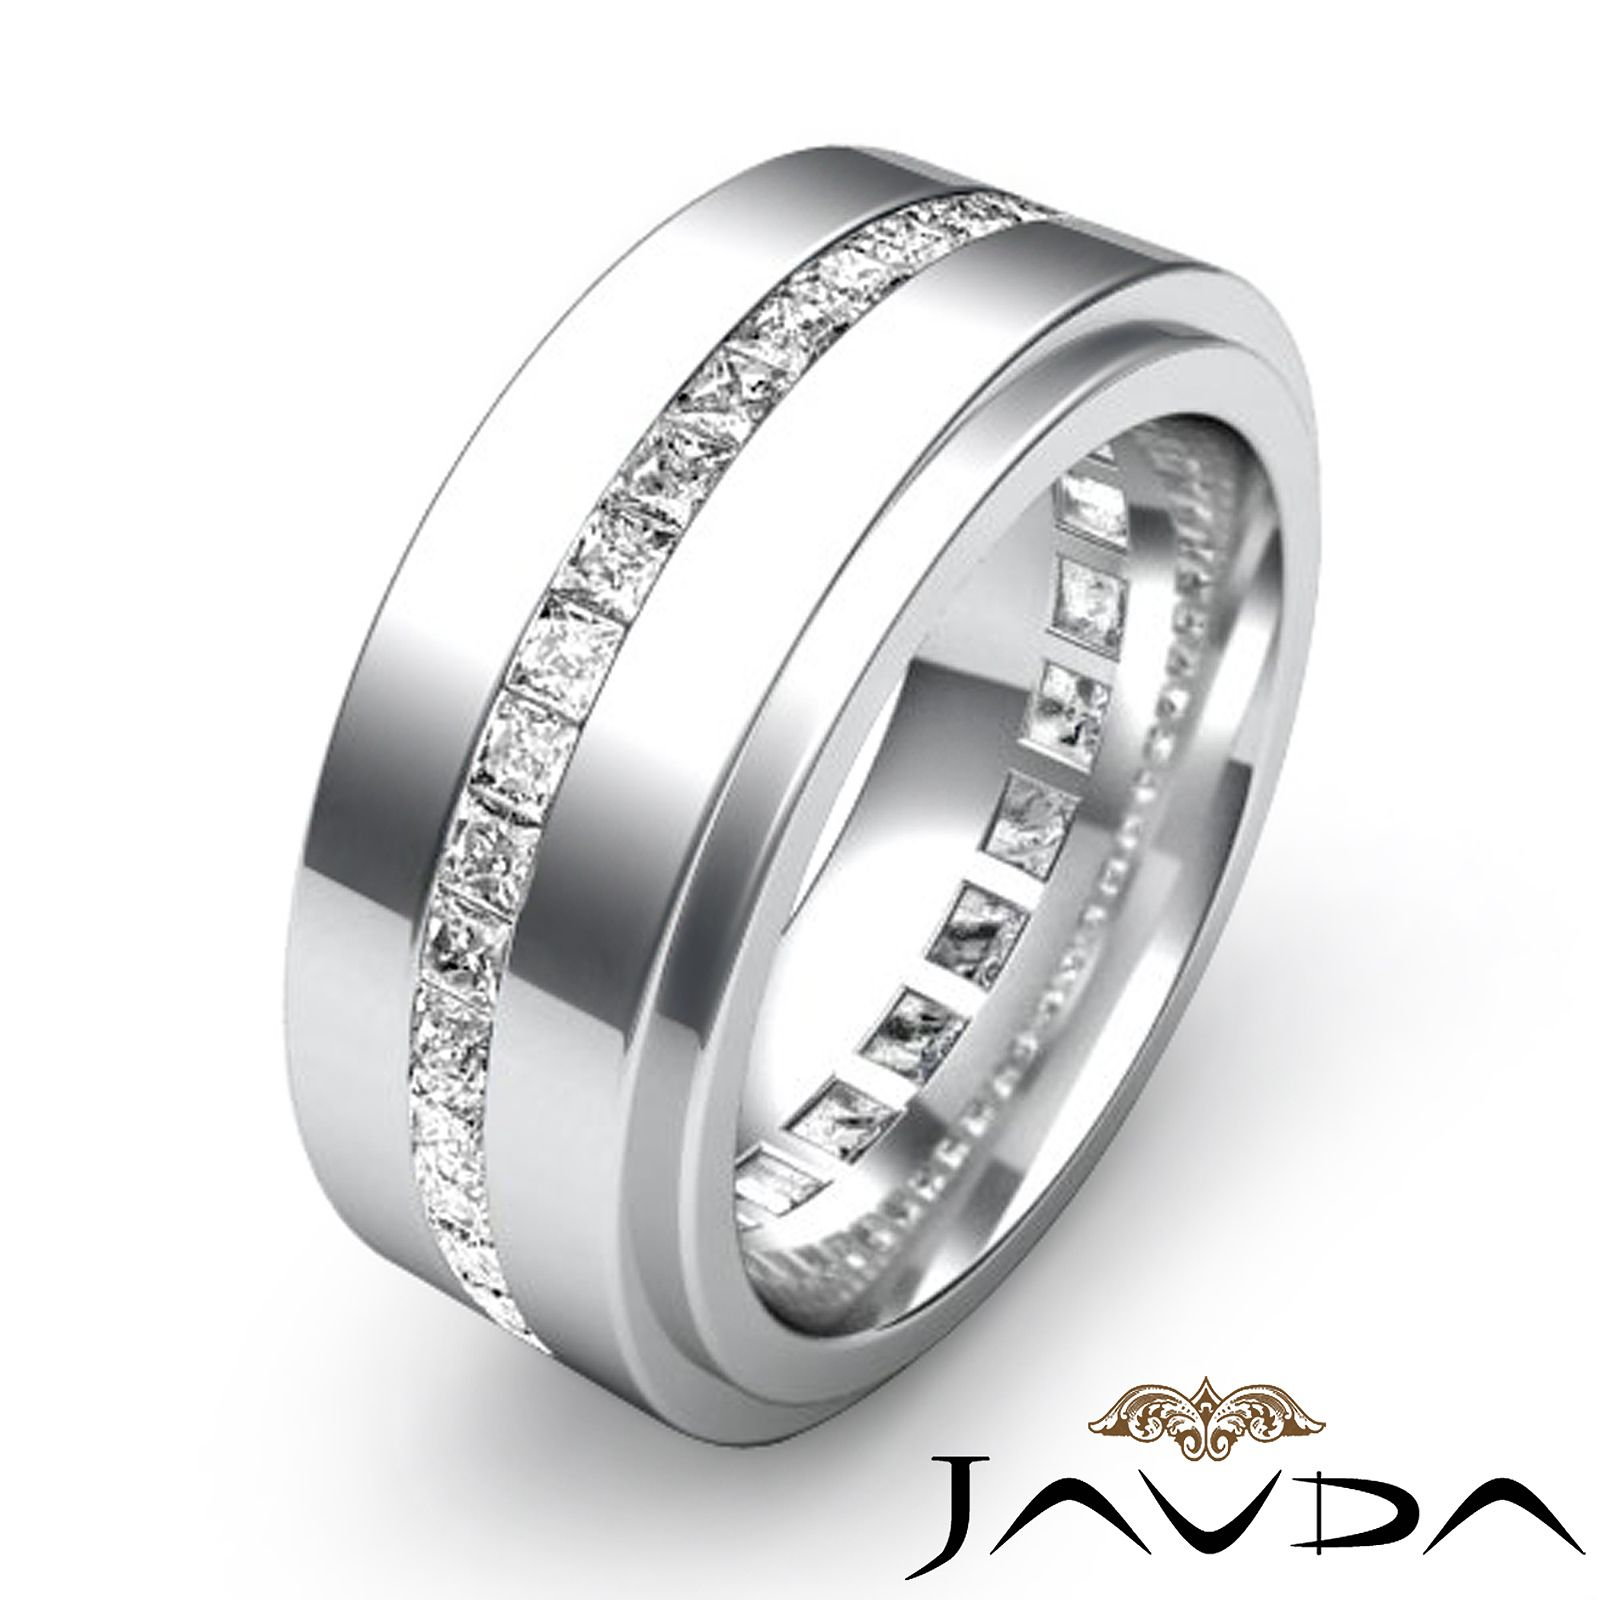 An Elegant And Stylish Princess Diamond Eternity Men S Wedding Band Is Made From 14k White Gold Fe Mens Diamond Wedding Bands Mens Wedding Rings Rings For Men